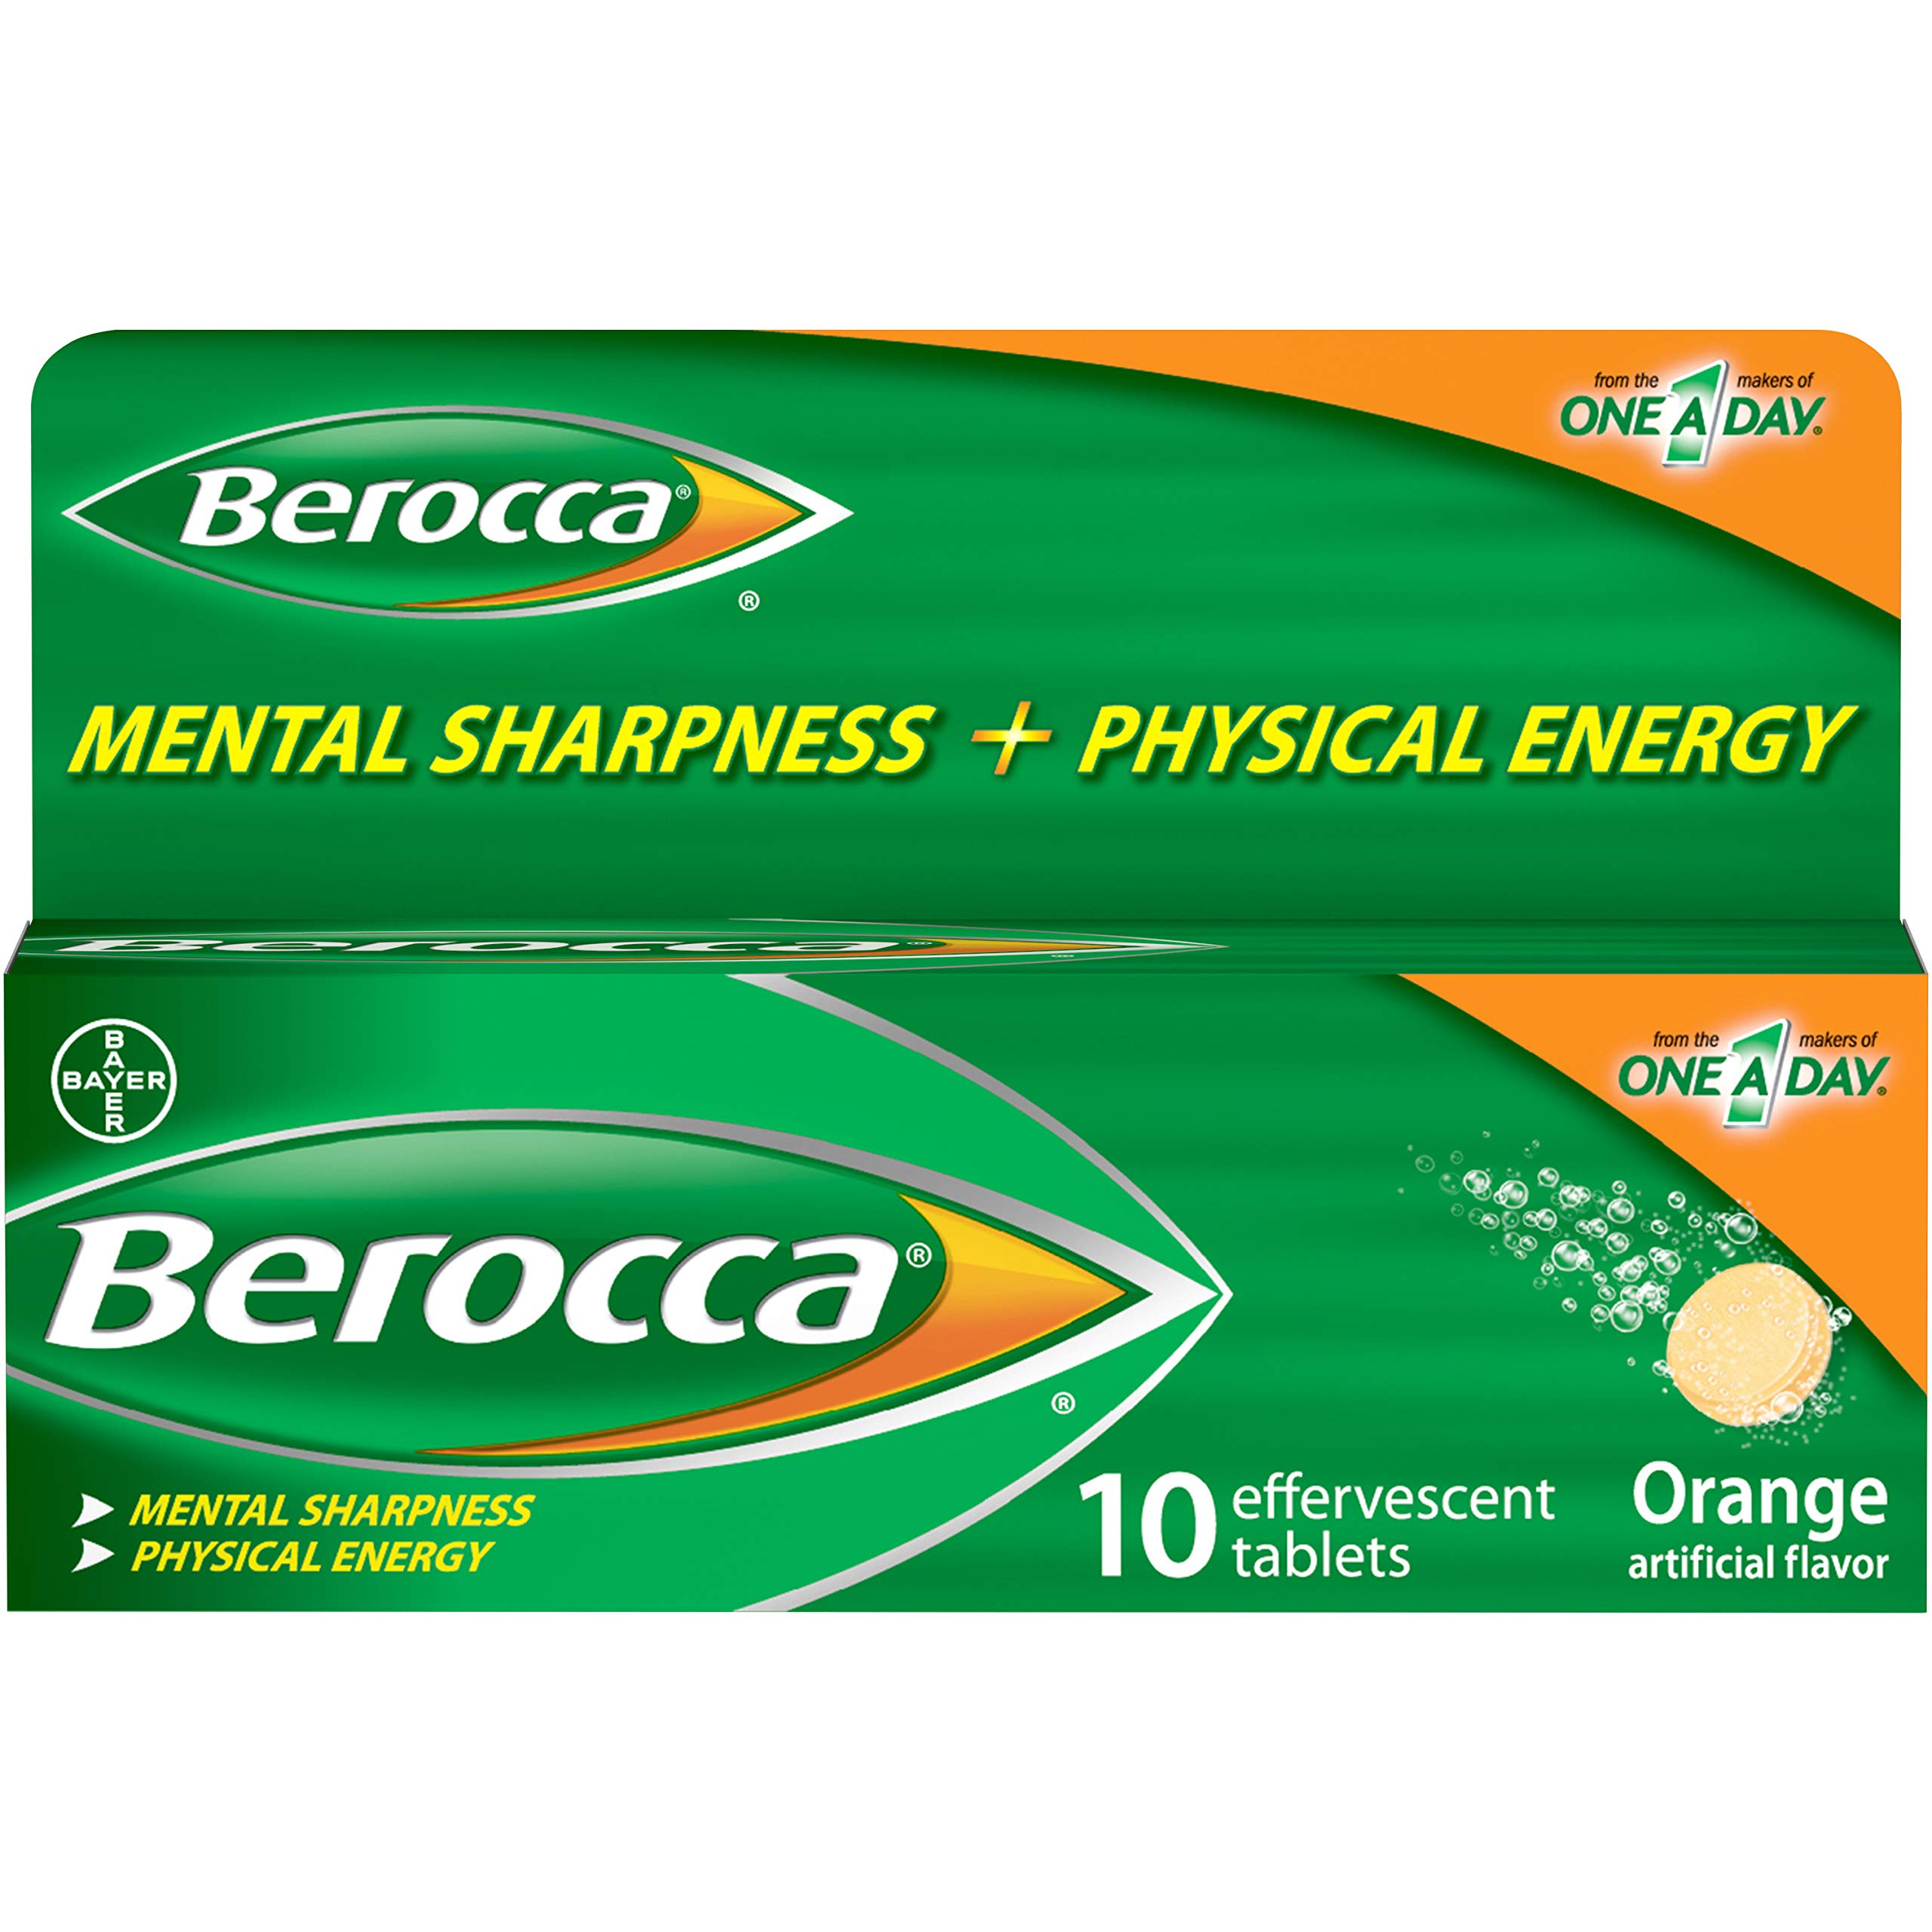 Berocca Energy Vitamin Supplement for Mental Sharpness and Physical Energy Support, Orange Flavor, Effervescent Tablets with Vitamin C for Immunity Support*, 10 Count